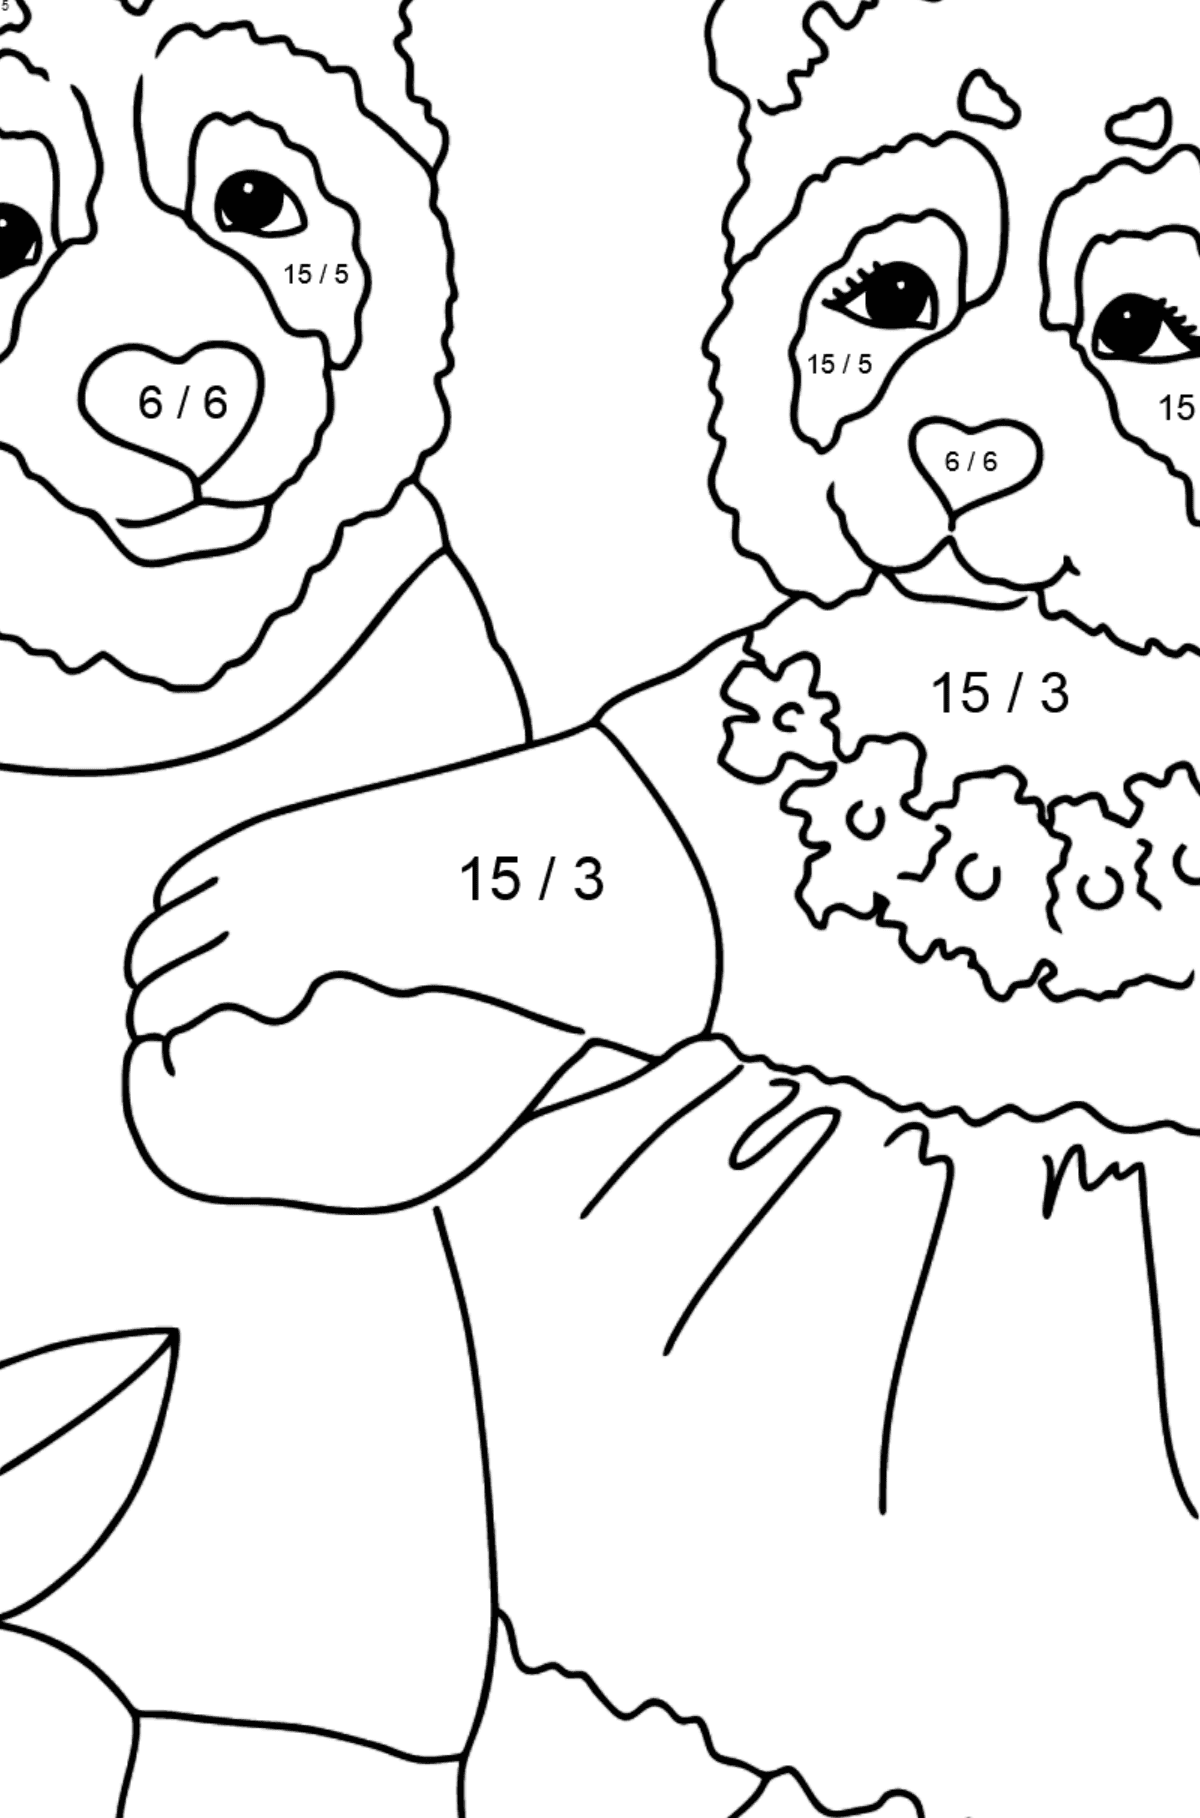 Coloring Page - Pandas Taking a Walk - Math Coloring - Division for Kids